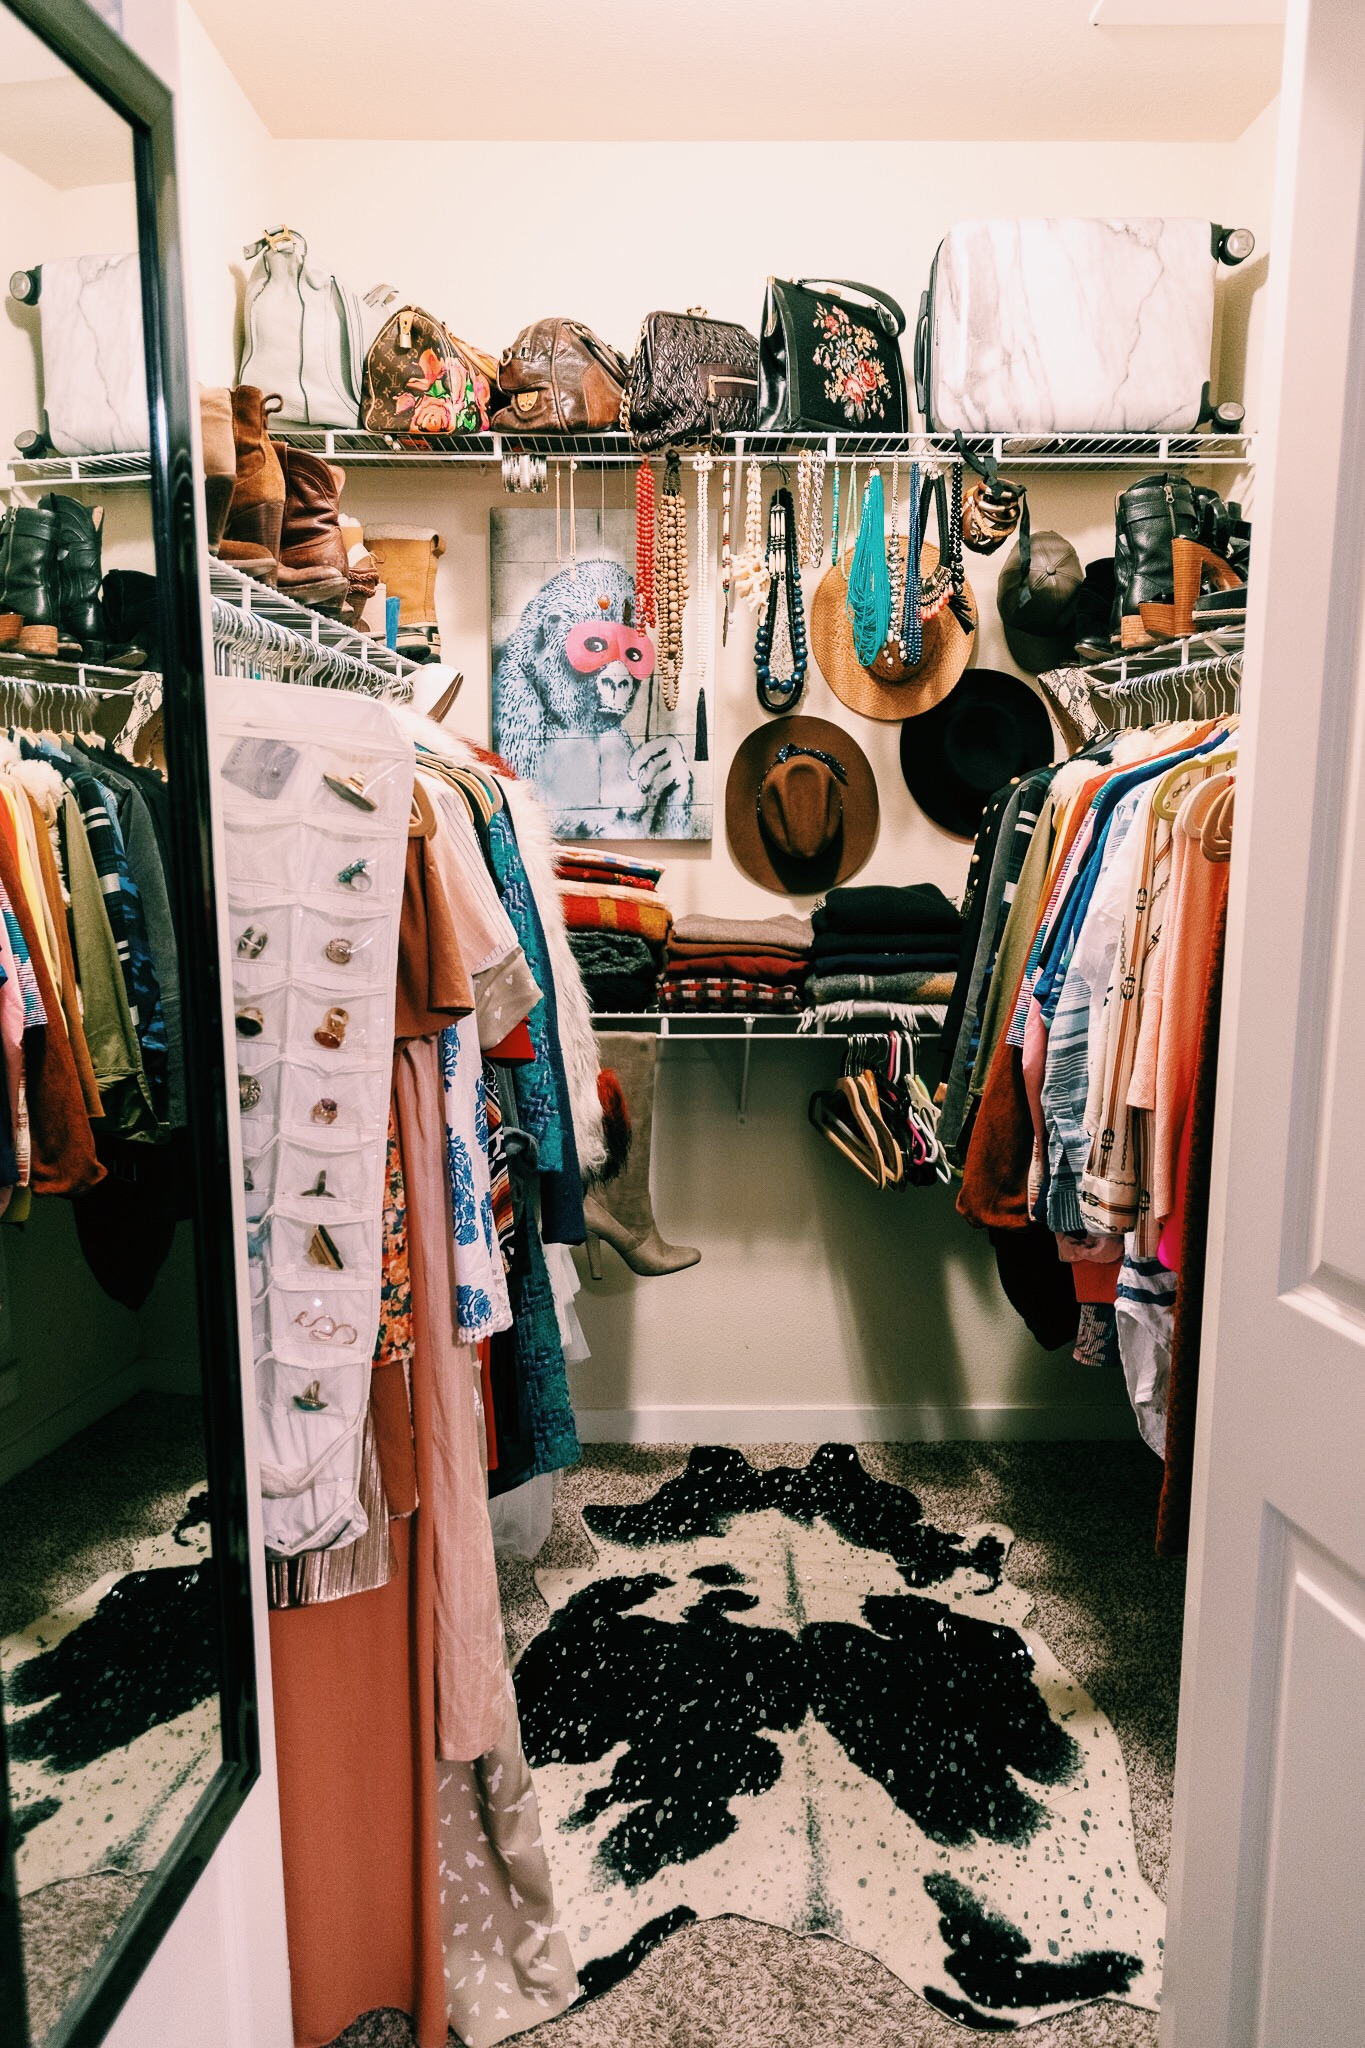 Raquel Greer Gordian teaches Austin women how to organize their closets in a way that is easy to navigate.